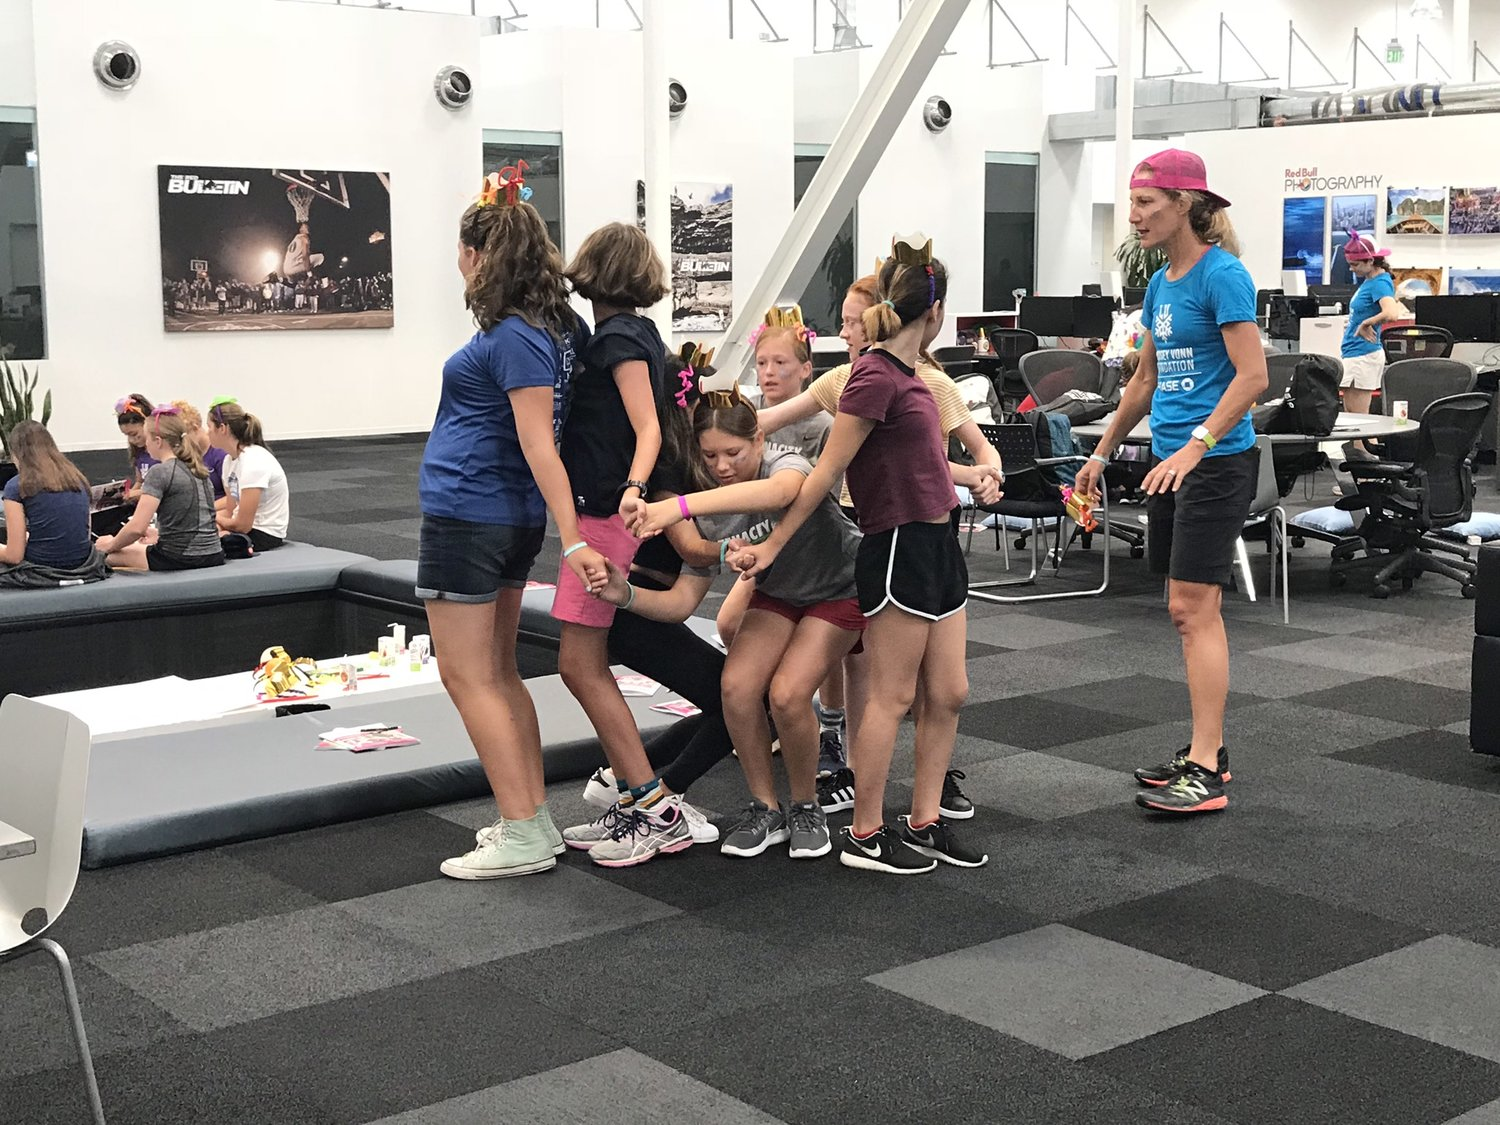 Human Knot - First Try